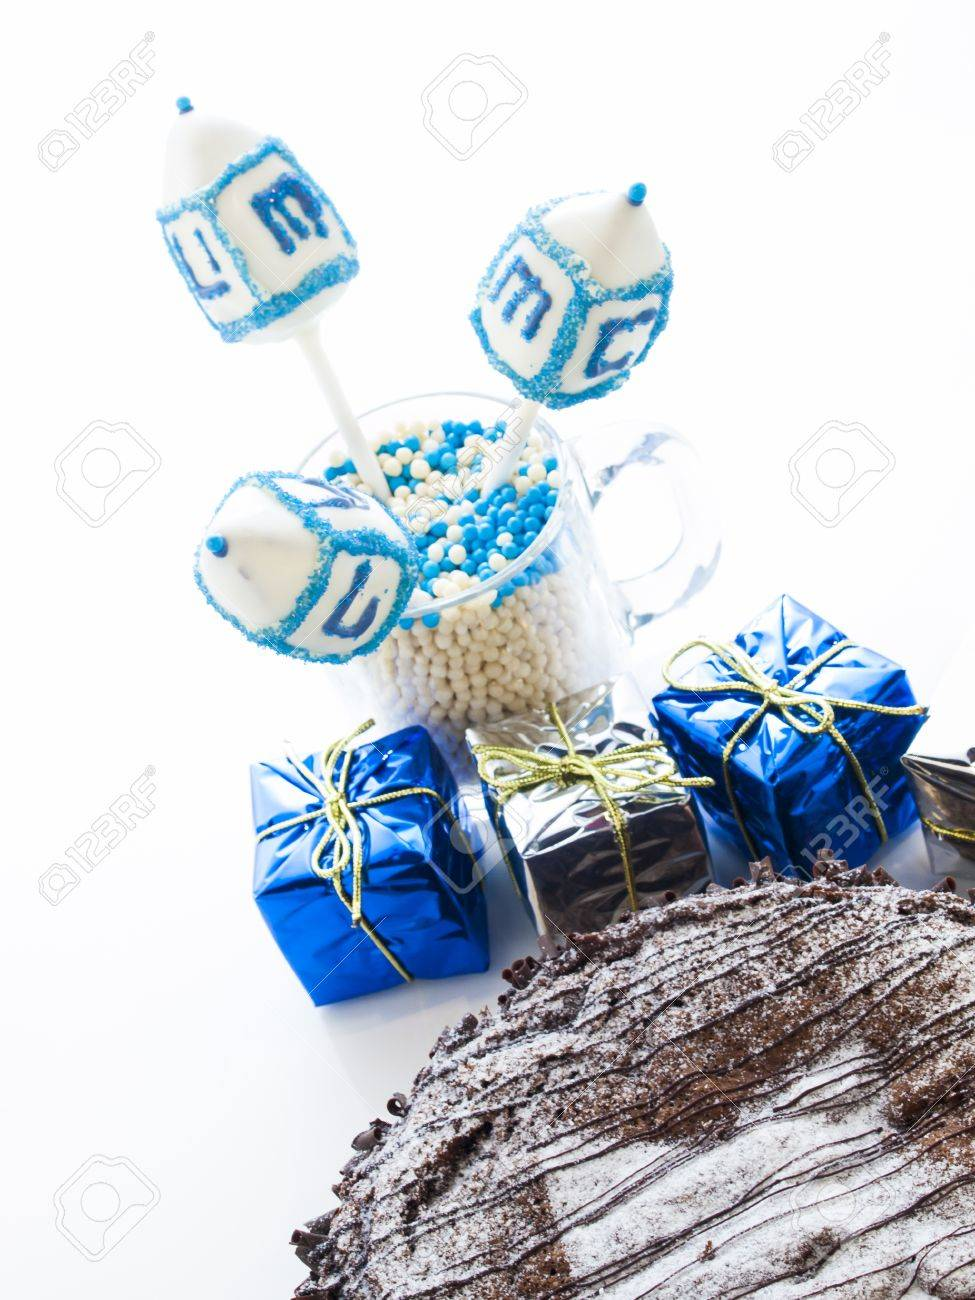 Flourless Chocolate Cake with Star of David for Hanukkah. Stock Photo - 15944025